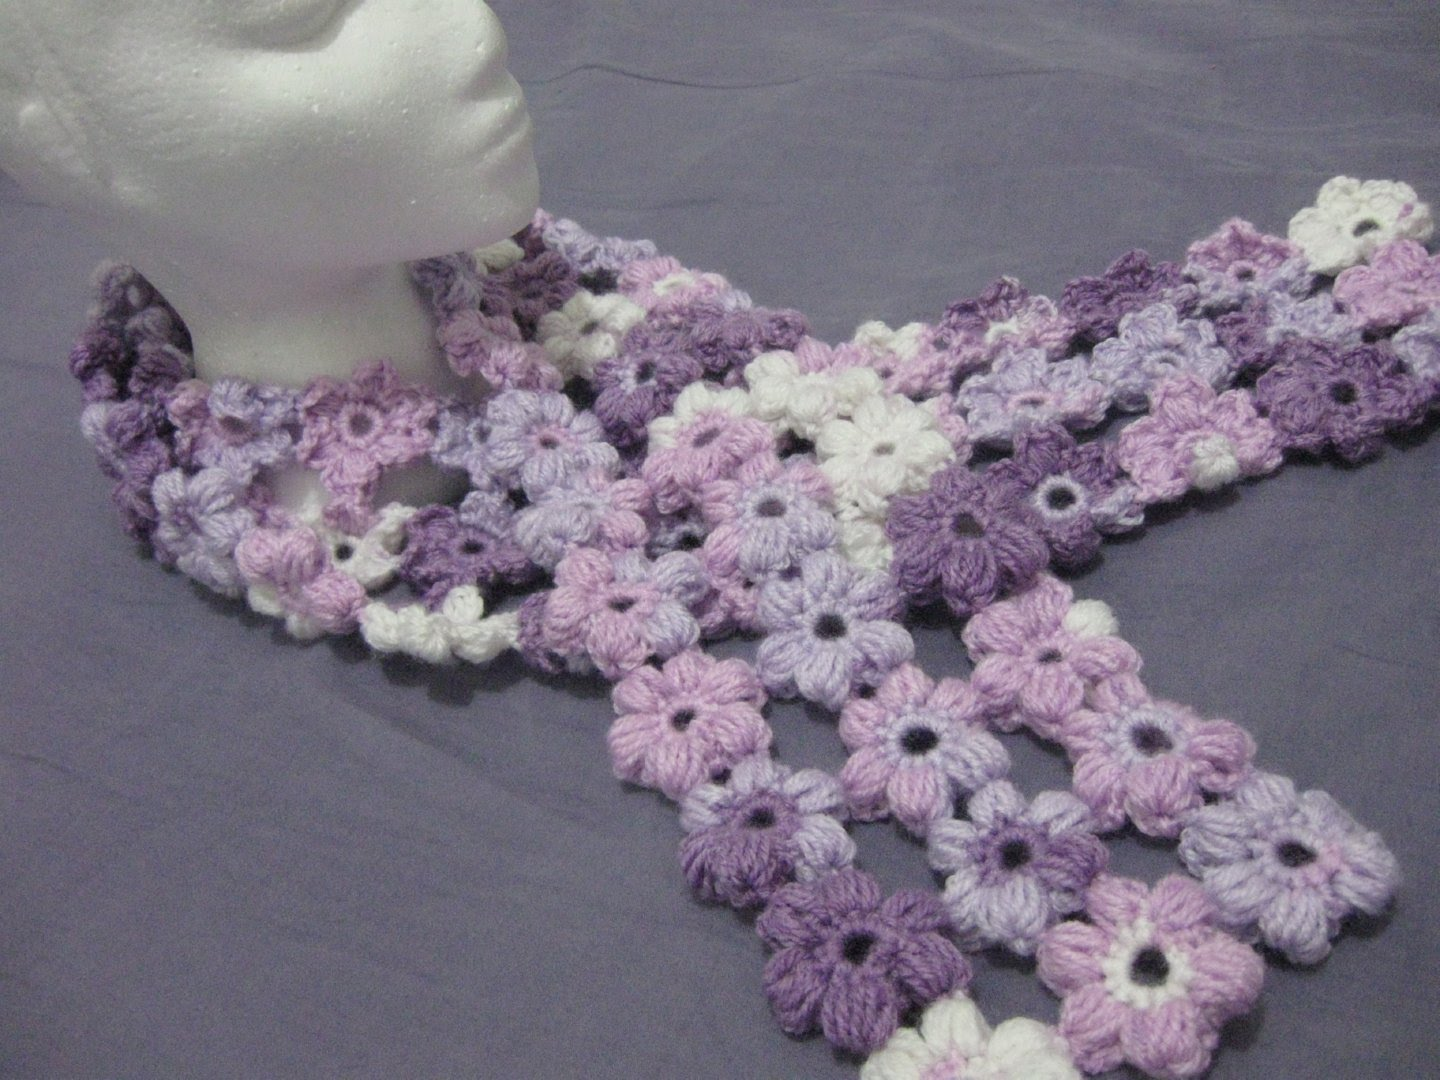 Gorgeous Scrap Yarn Puff Stitch Flower Scarf Pattern To Amp Up Your Glam [Free Pattern]